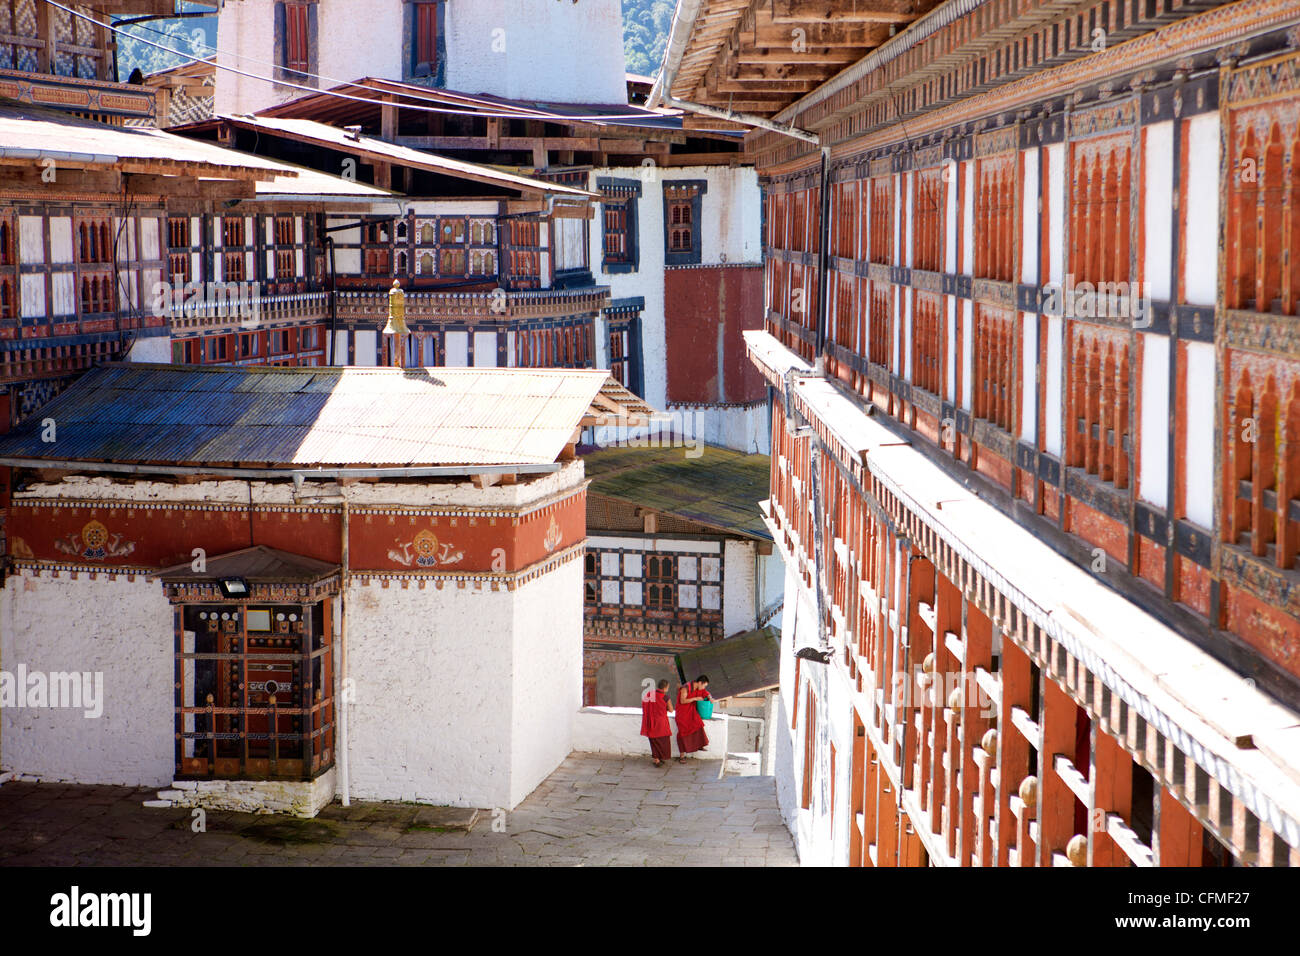 Two Buddhist monks chatting against the imposing backdrop of Trongsa Dzong, Trongsa, Bhutan, Asia - Stock Image